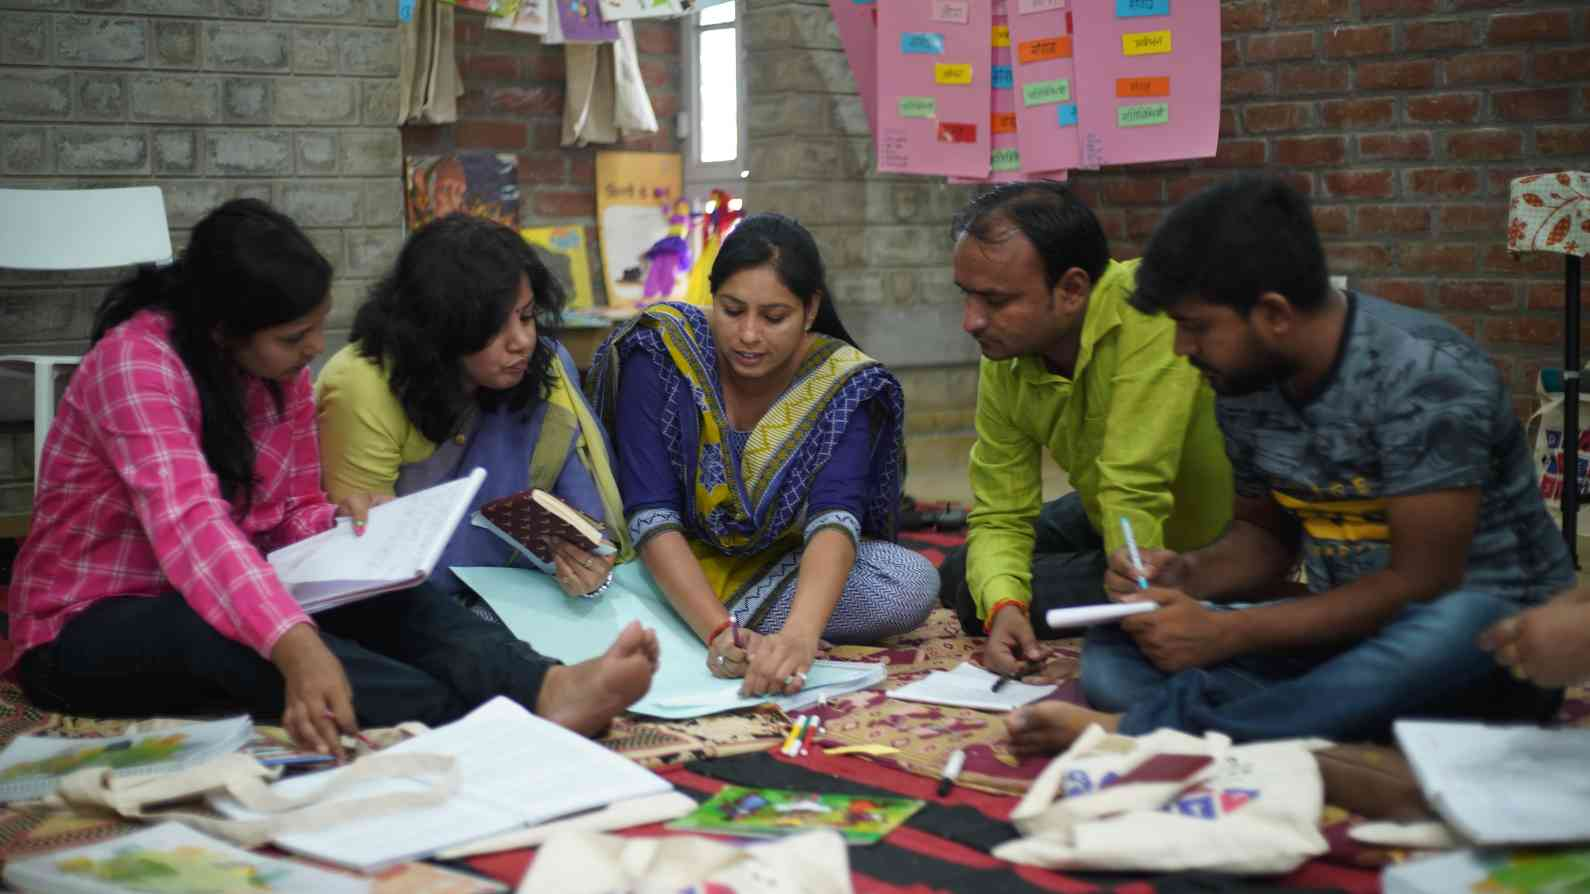 group of five people sitting together at a teacher training session, surrounded by books-teacher training